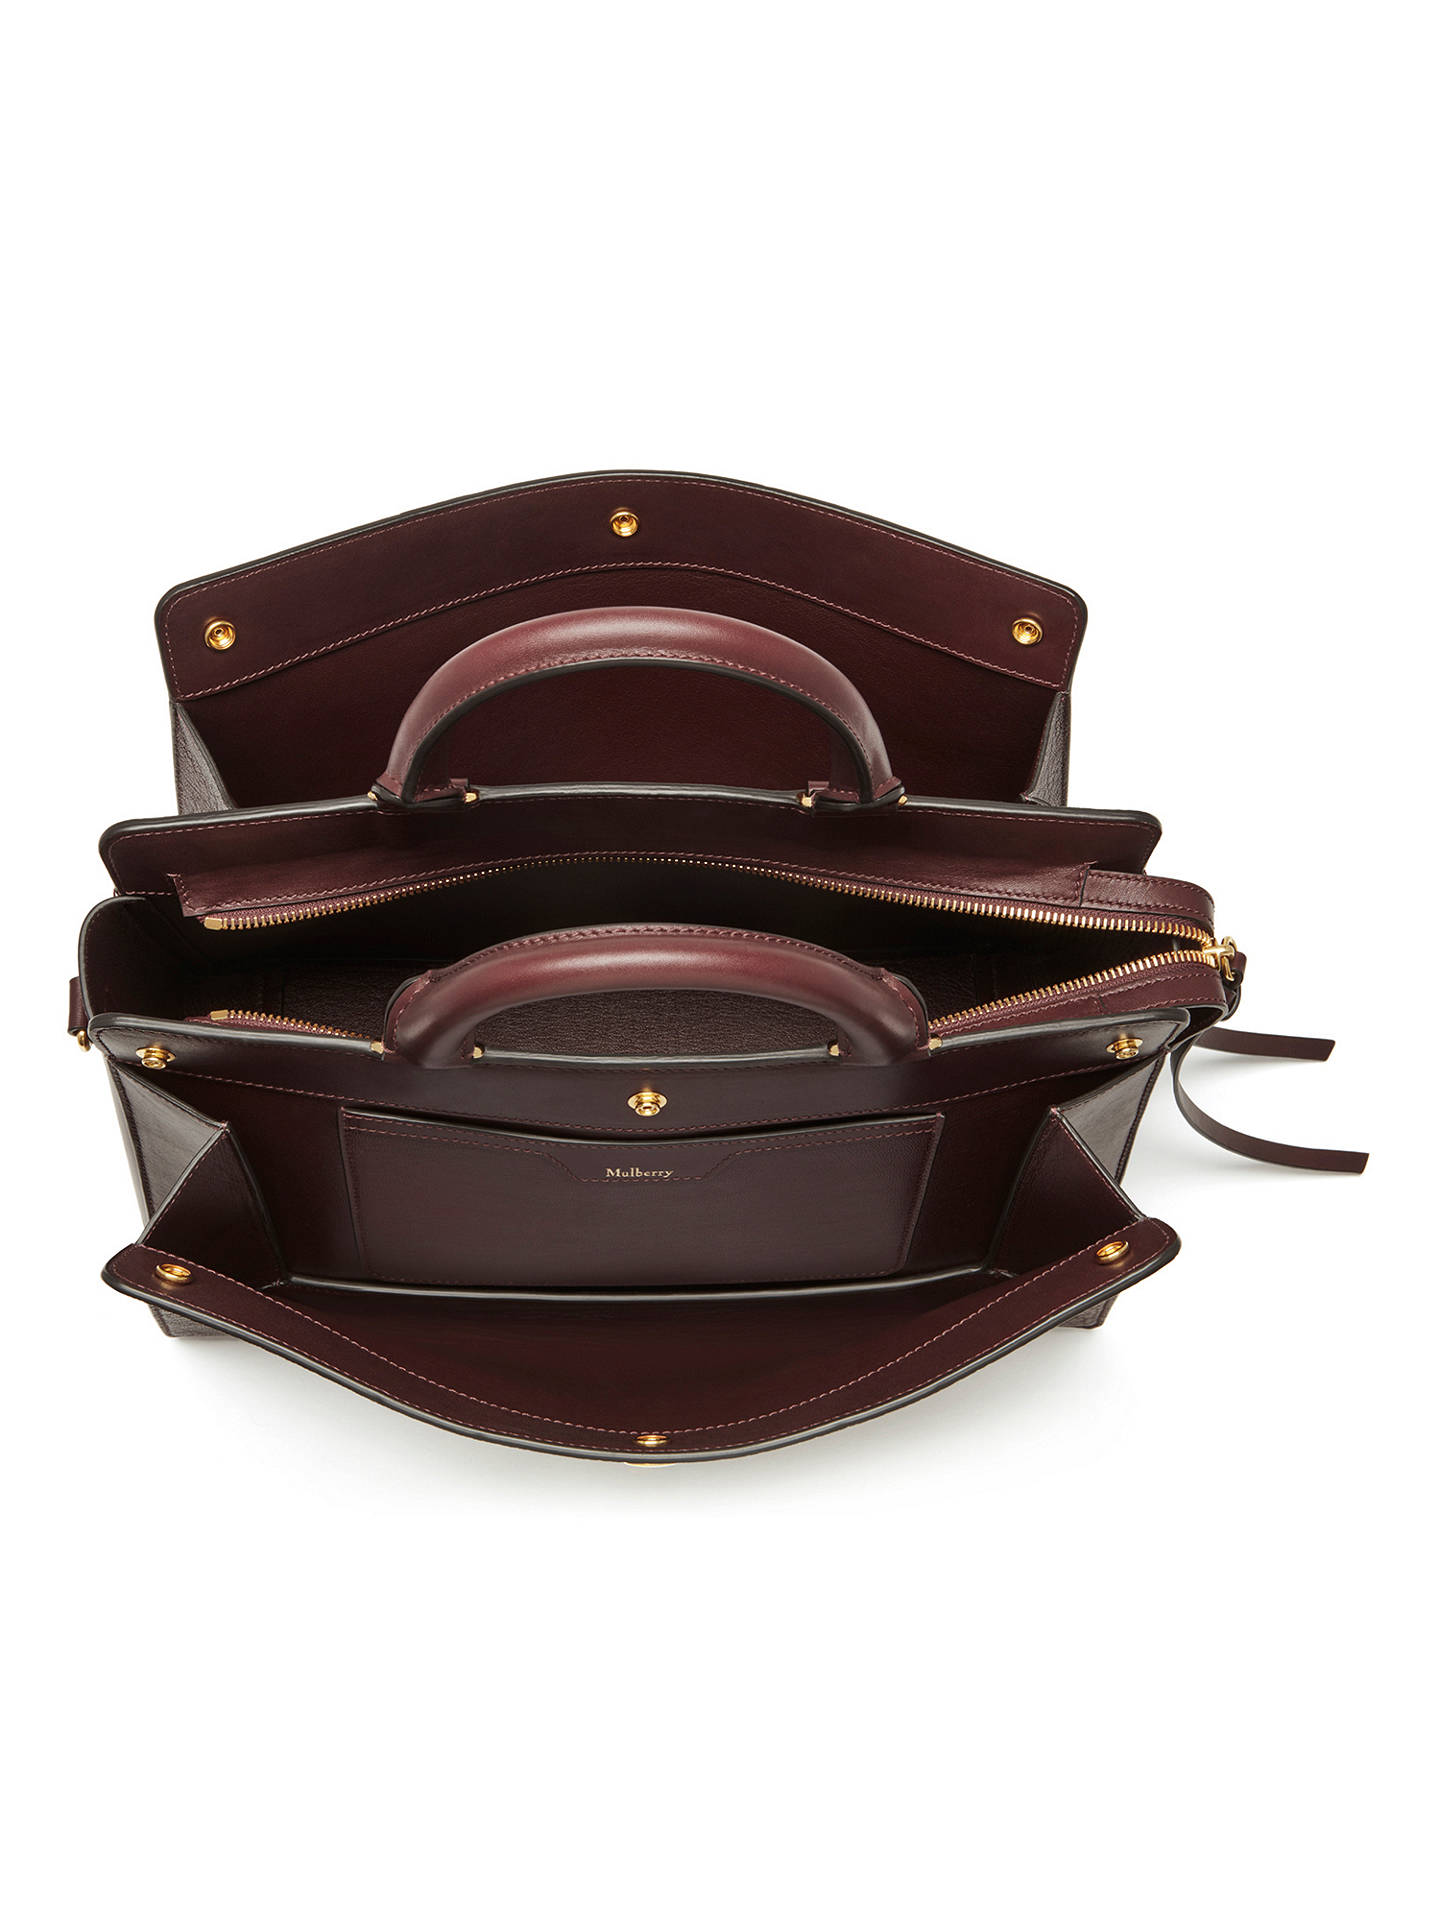 5f3c21512f9 ... Buy Mulberry Chester Textured Goat Leather Bag, Burgundy Online at  johnlewis.com ...